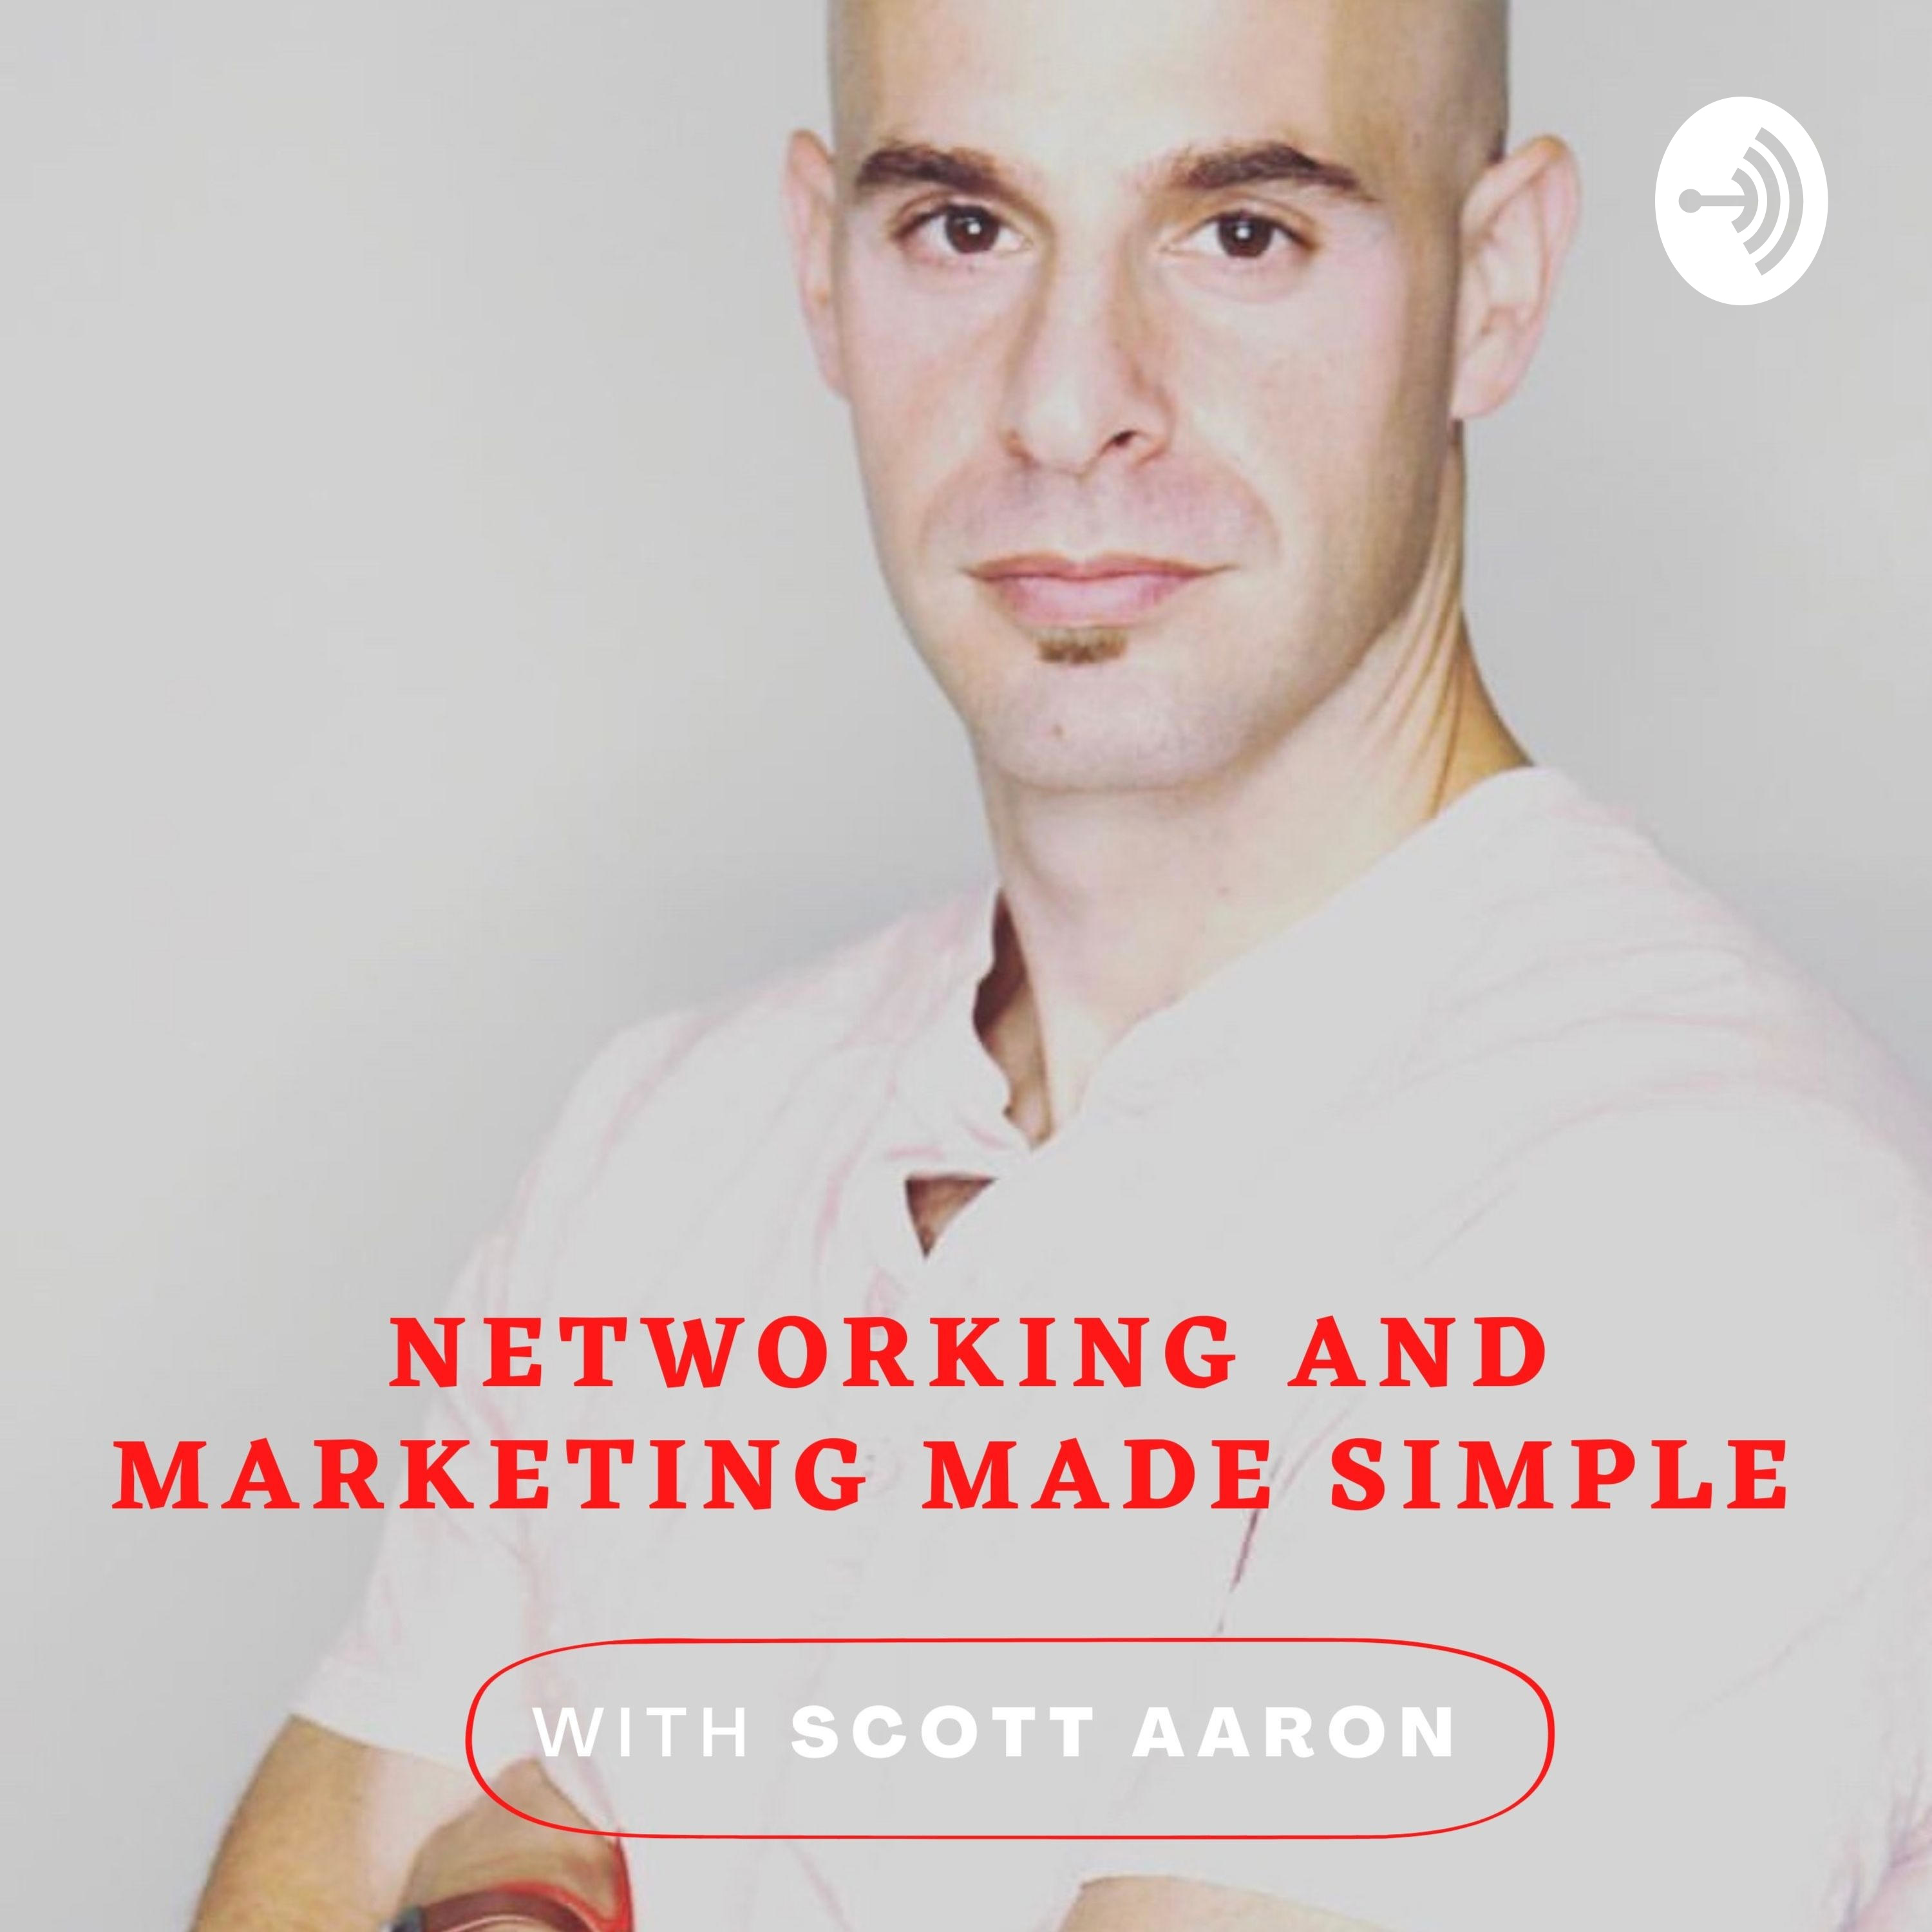 NETWORKING AND MARKETING MADE SIMPLE